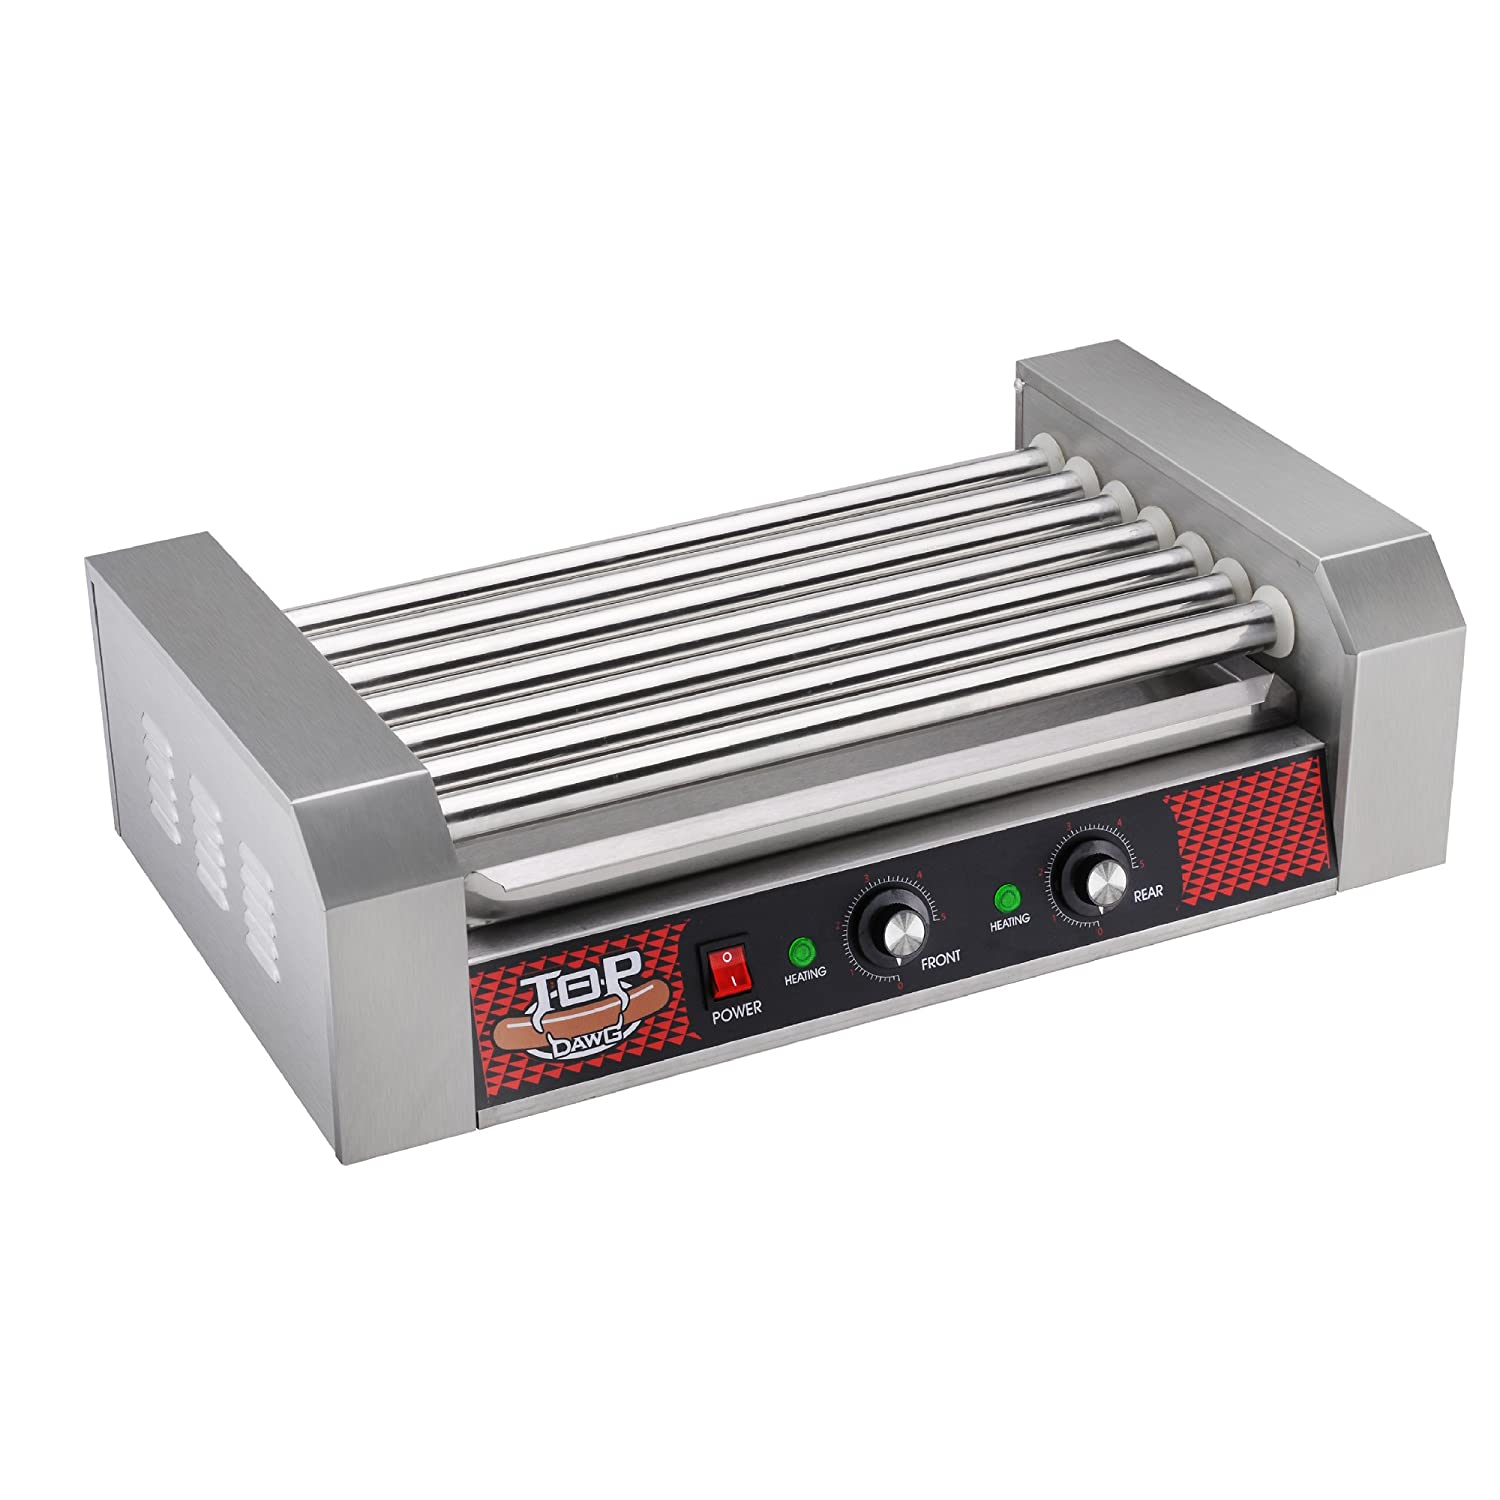 Uncategorized Hot Dog Cookers Specialty Kitchen Appliances amazon com great northern commercial quality 18 hot dog and 7 roller grilling machine 1400 watt cookers kitchen dining